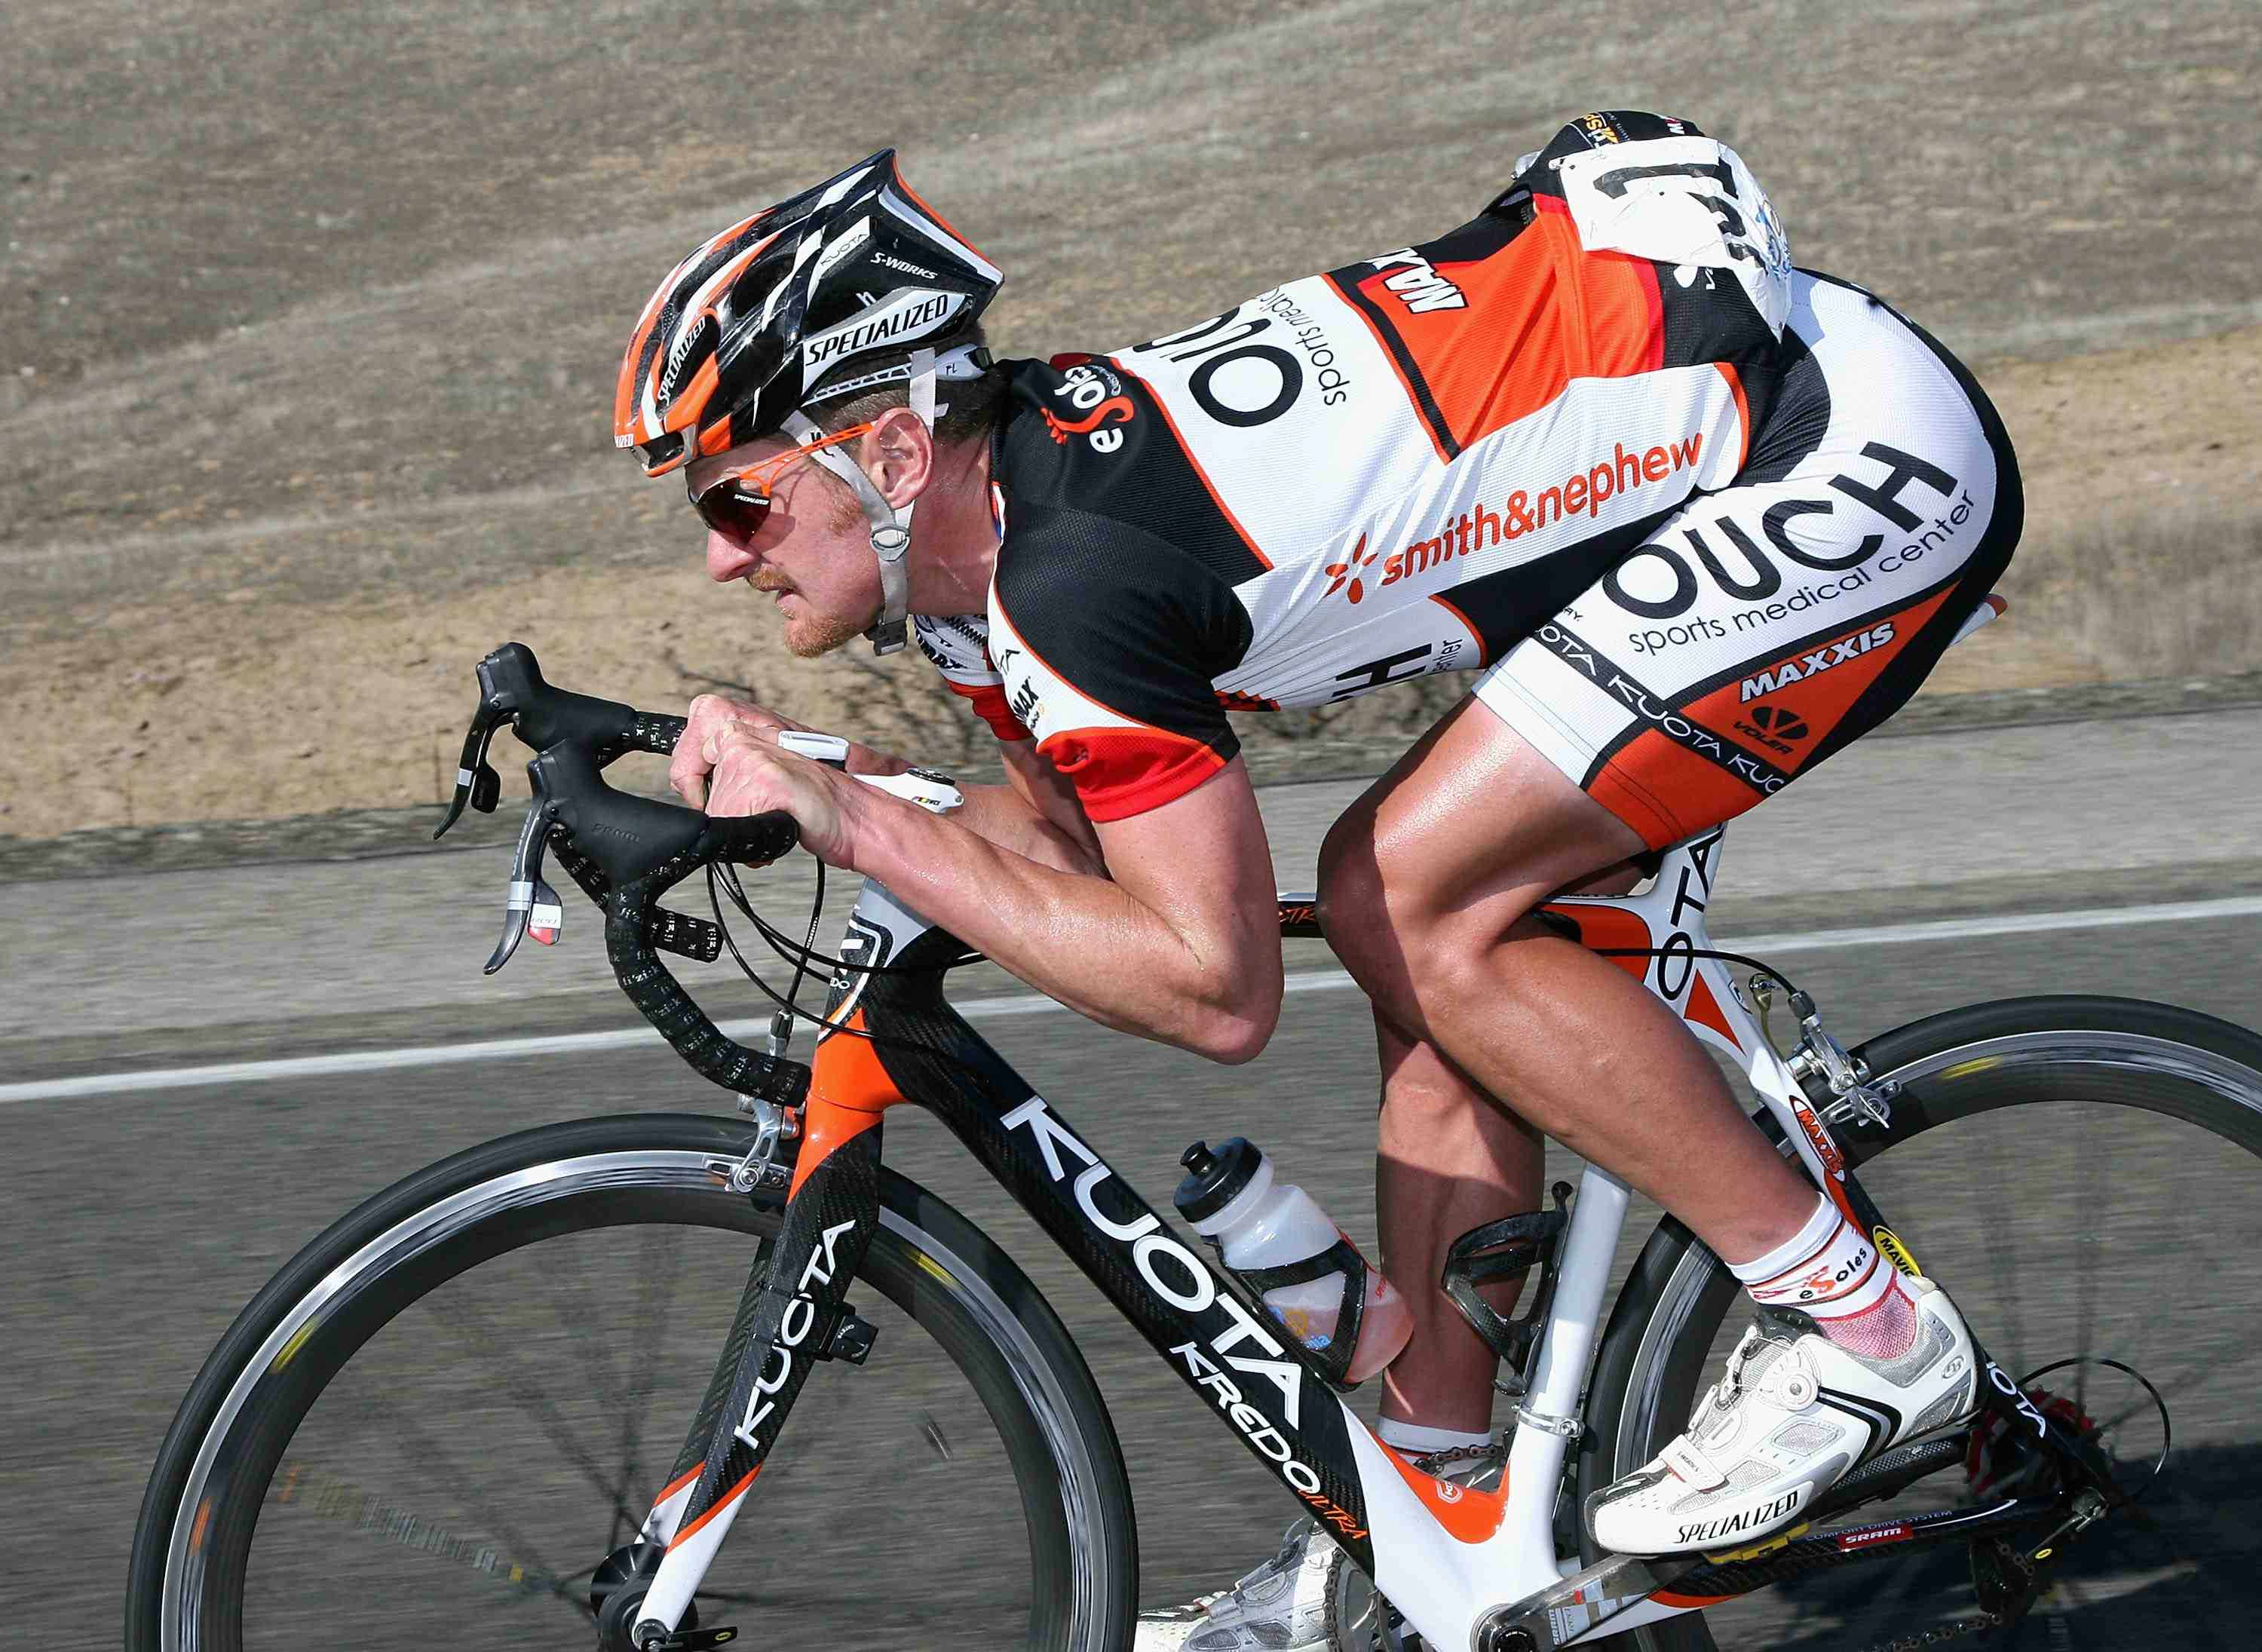 American road racer Floyd Landis (Team OUCH) competes in Stage 5 of the AMGEN Tour of California from Visalia to Paso Robles on February 19, 2009 in San Luis Obispo County, California.